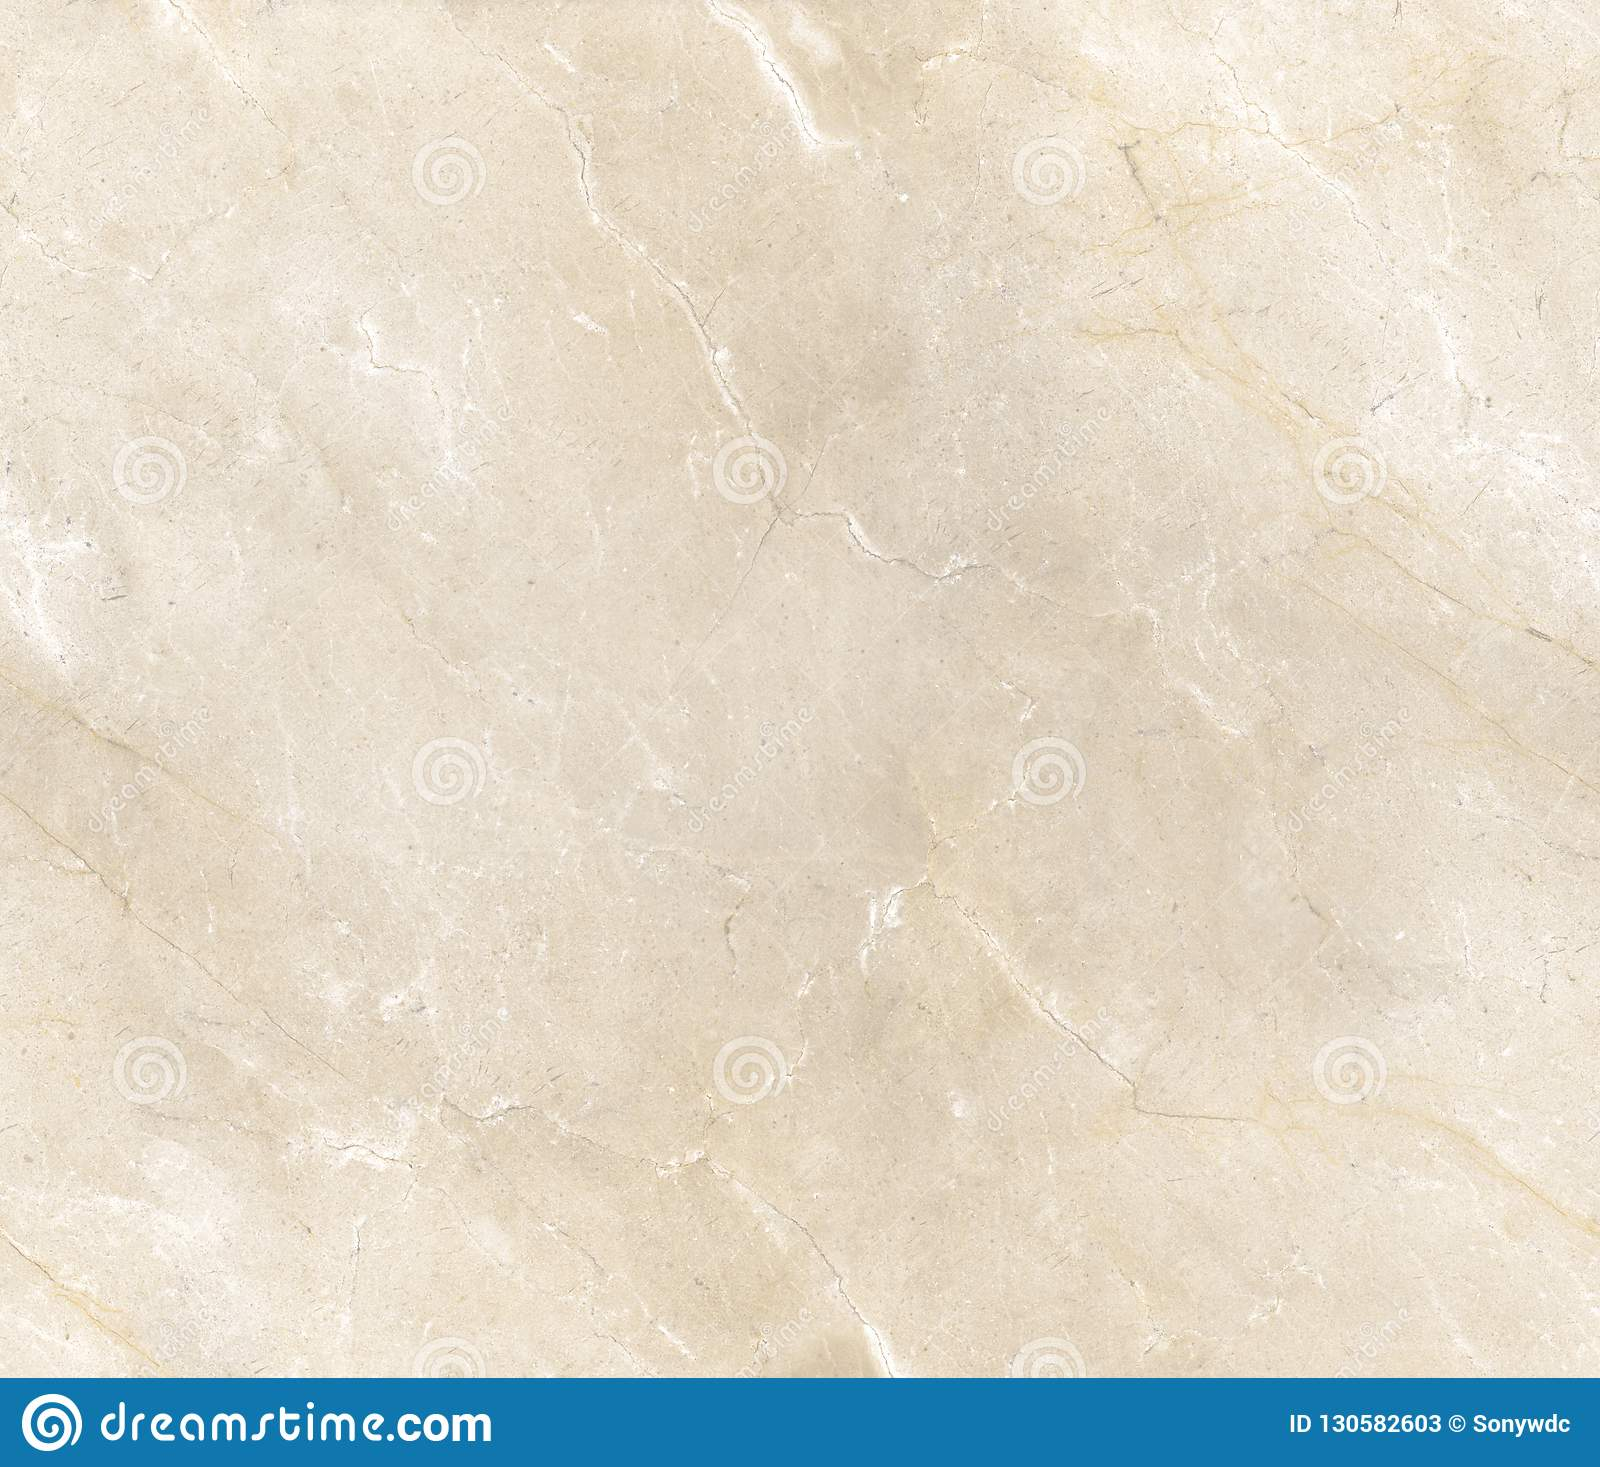 Light Beige Marble Patterned Texture Stock Image Image Of Grey High 130582603